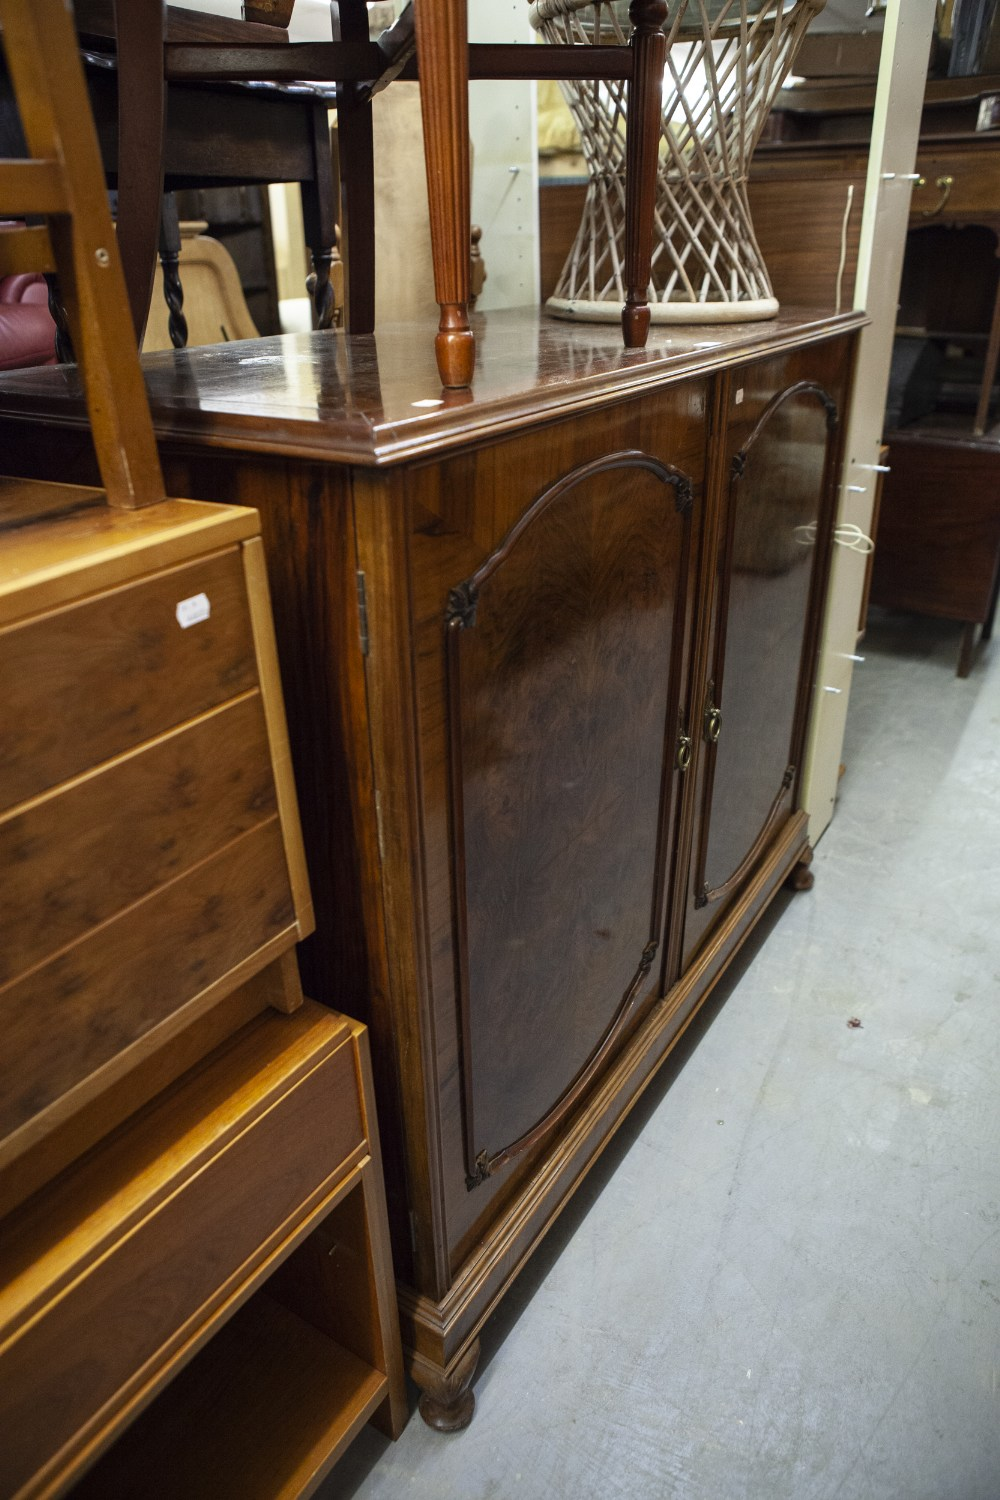 Lot 50 - A LARGE CIRCA 1930's BURR WALNUTWOOD TWO DOOR SIDE CABINET OR DRINKS CABINET, ENCLOSING A CERAMIC